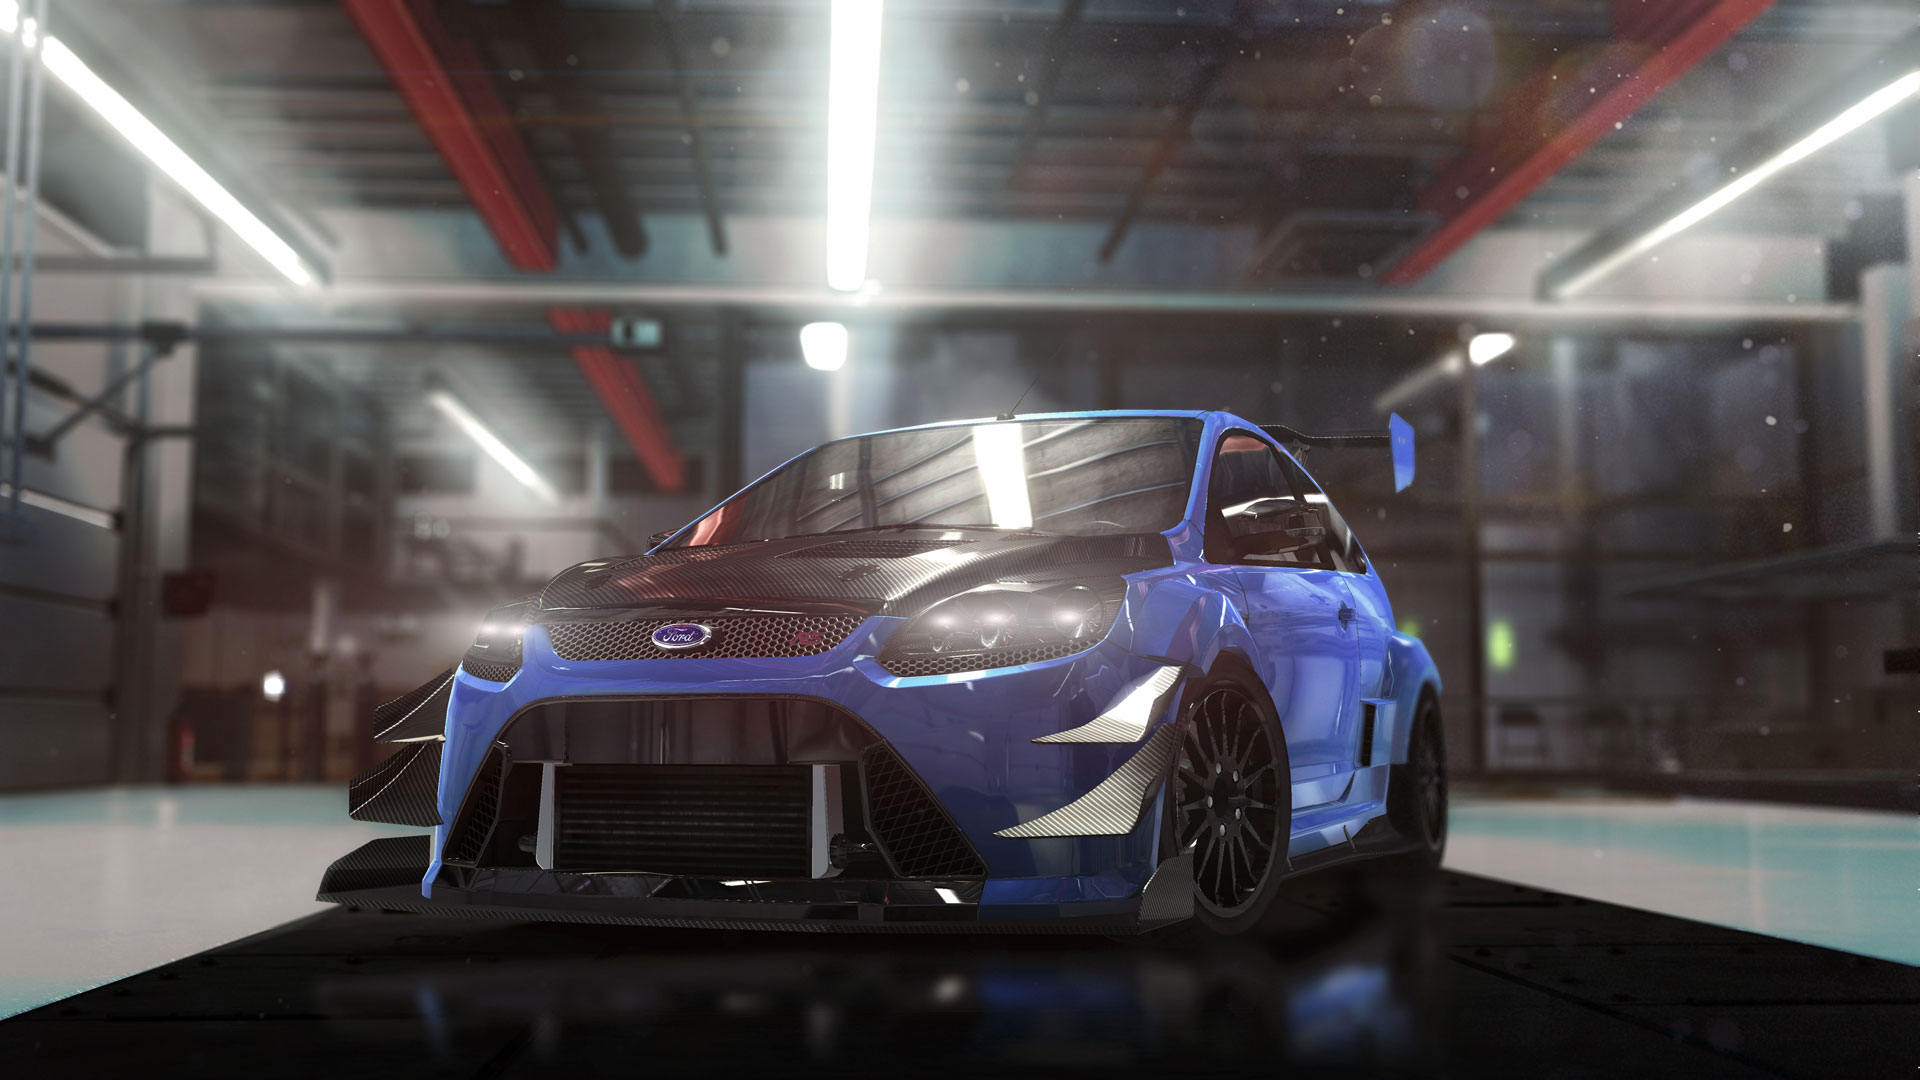 image ford focus rs perf the crew wiki wikia. Black Bedroom Furniture Sets. Home Design Ideas